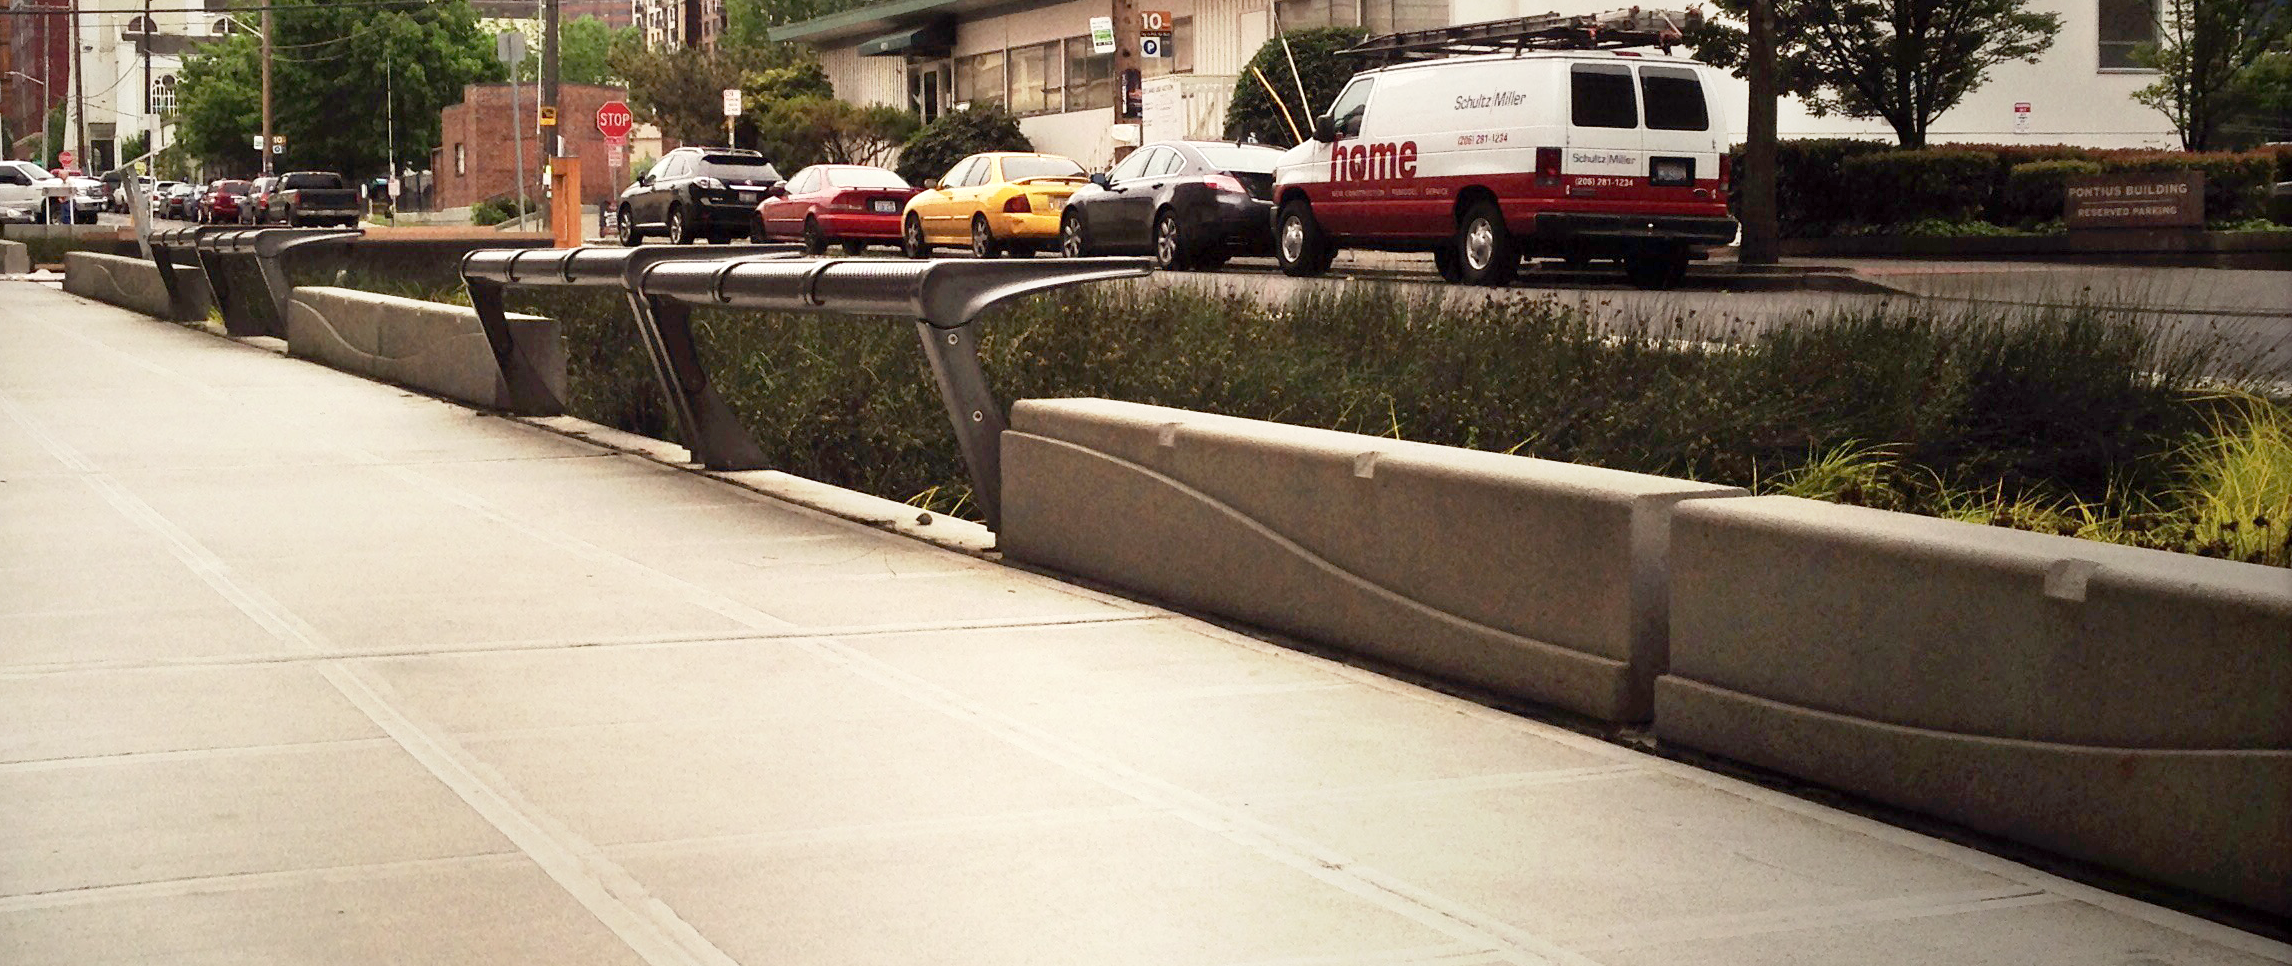 """In contrast, clip """"reliefs"""" are used on these concrete curbs as deterrents. This gives the illusion that both pieces are of one kit of parts:one void, one mass.Nicely done."""